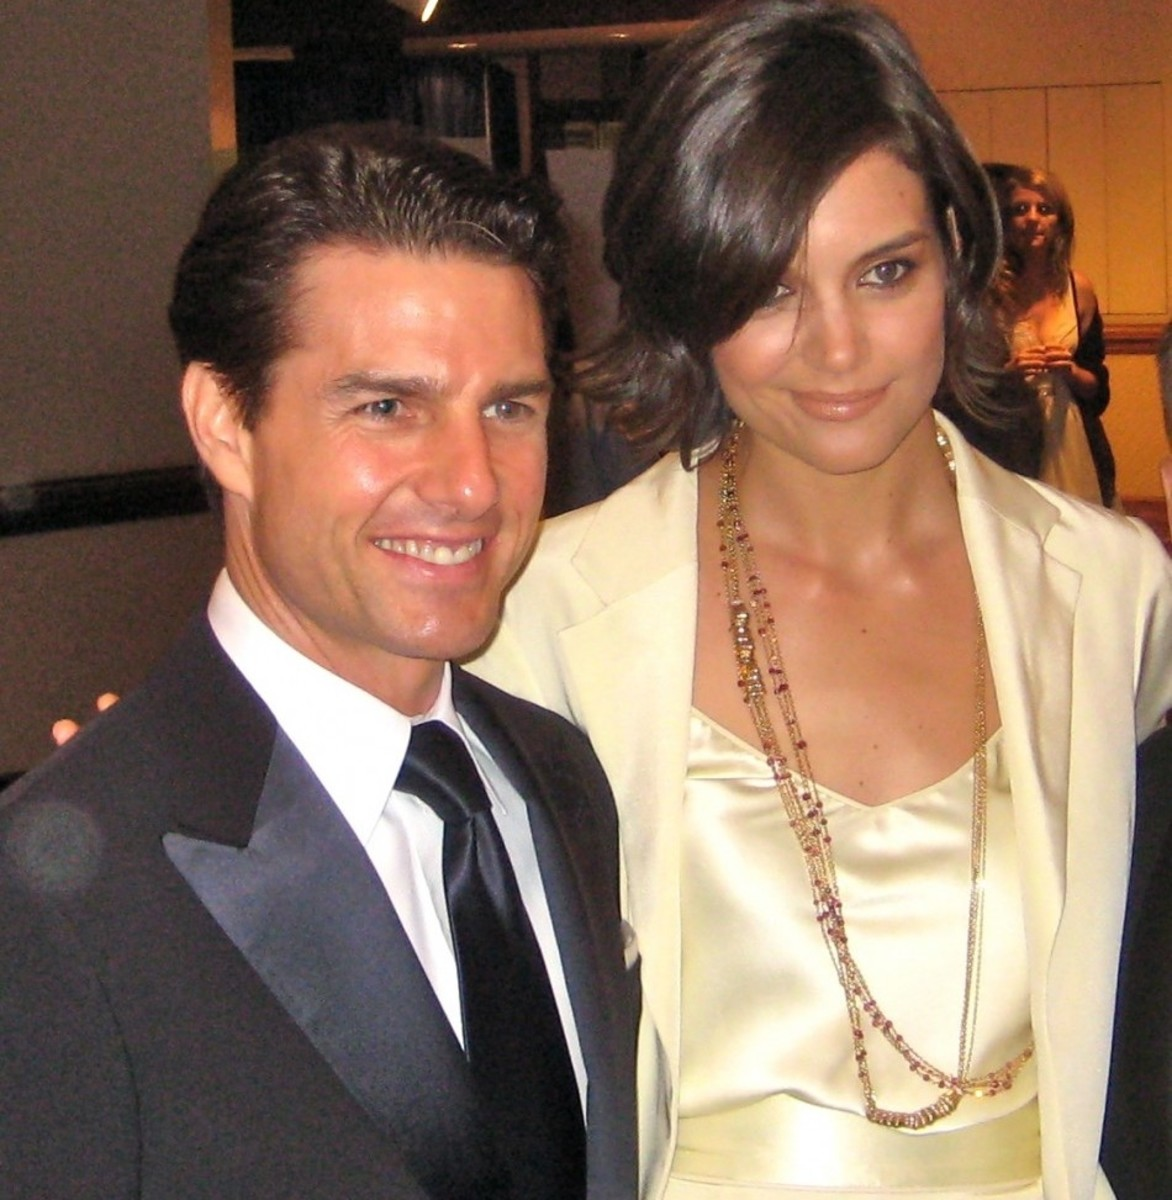 Tom Cruise & Katy Holmes before Divorce